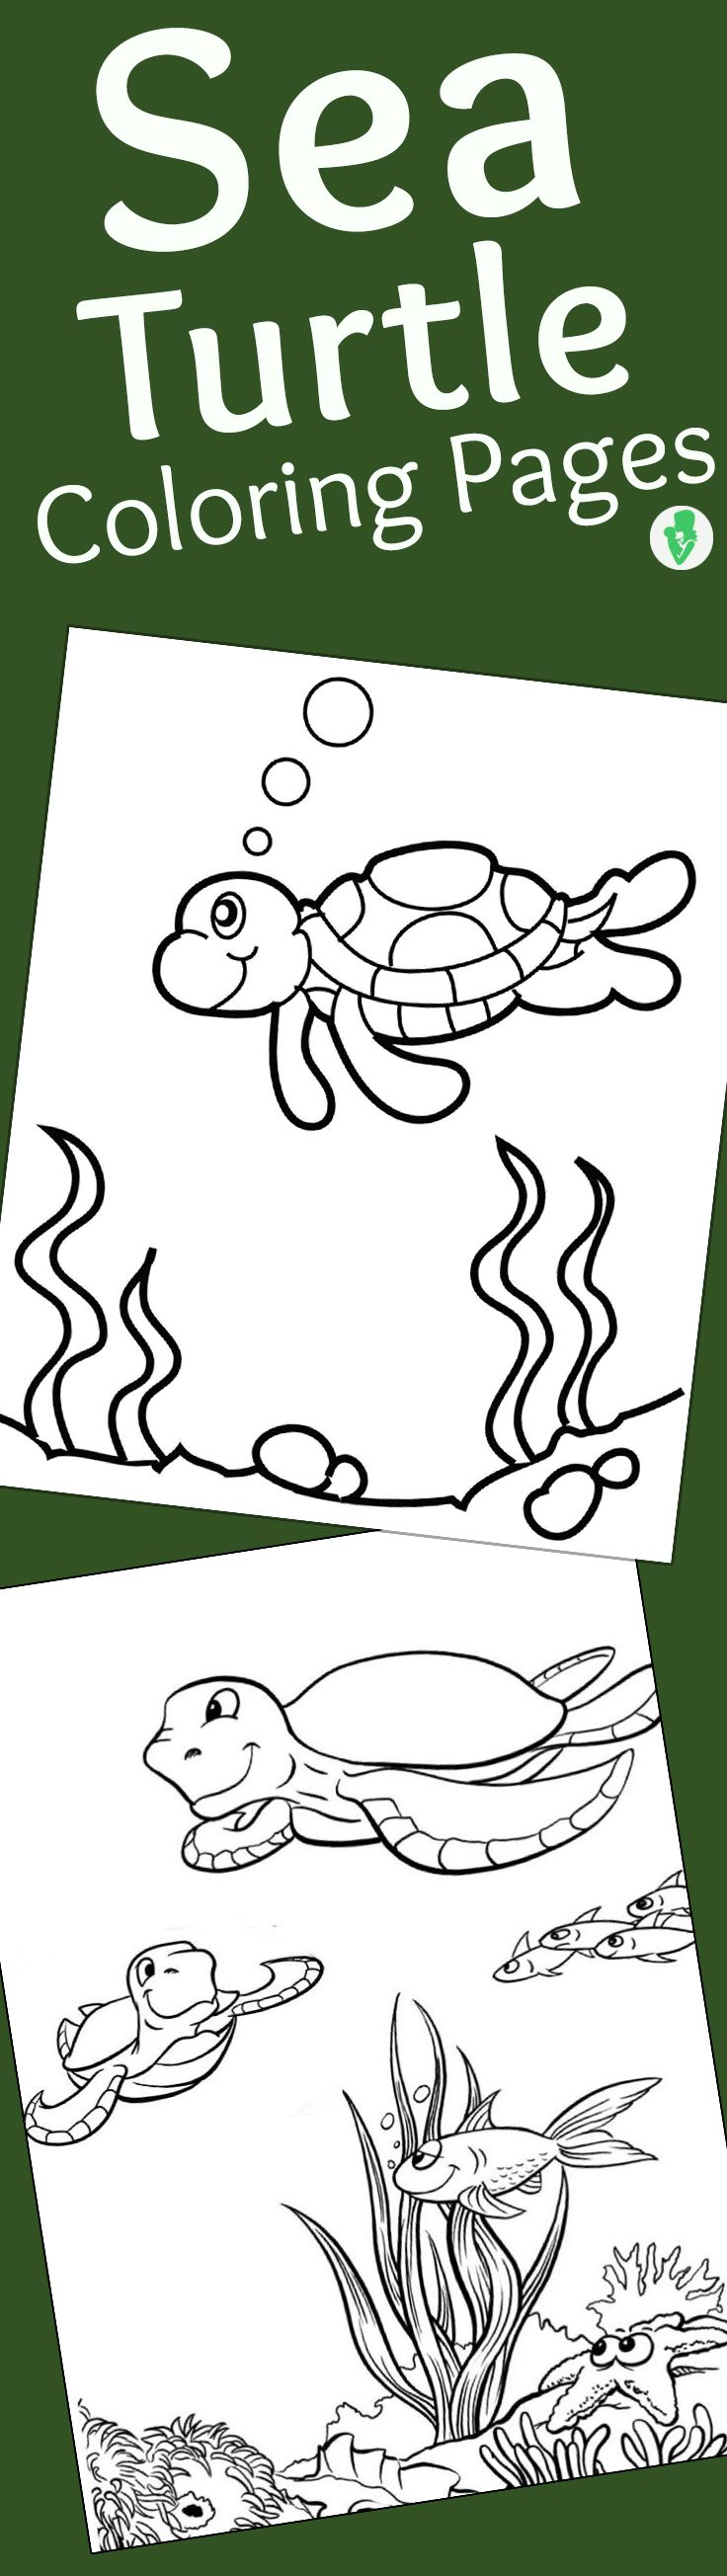 Top 10 Free Printable Cute Sea Turtle Coloring Pages Online ...